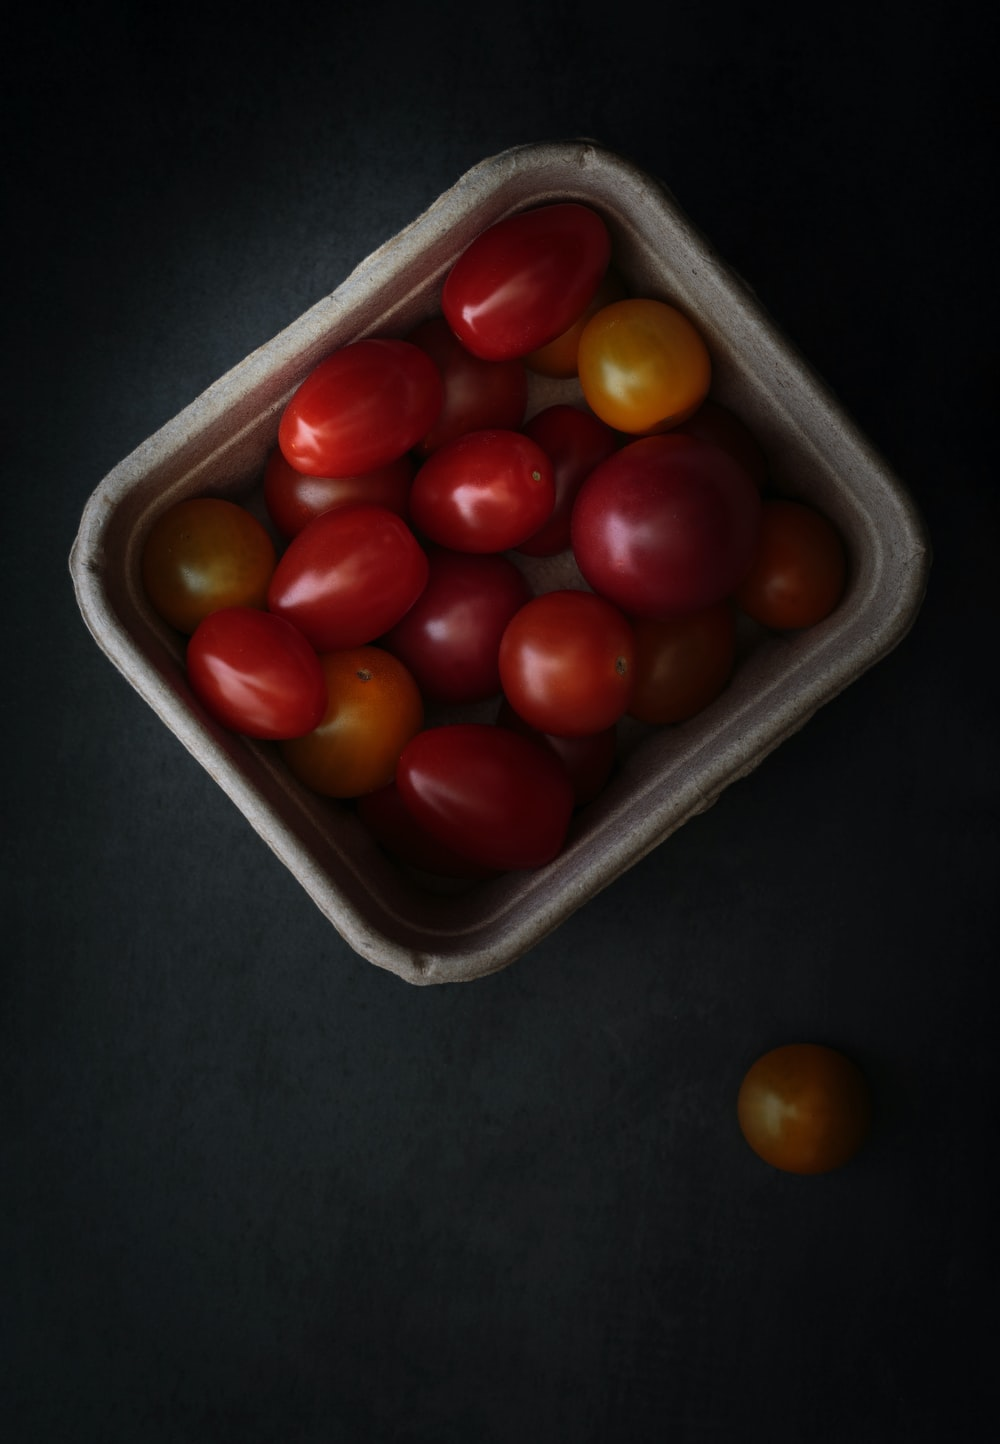 round red fruits on white plastic container